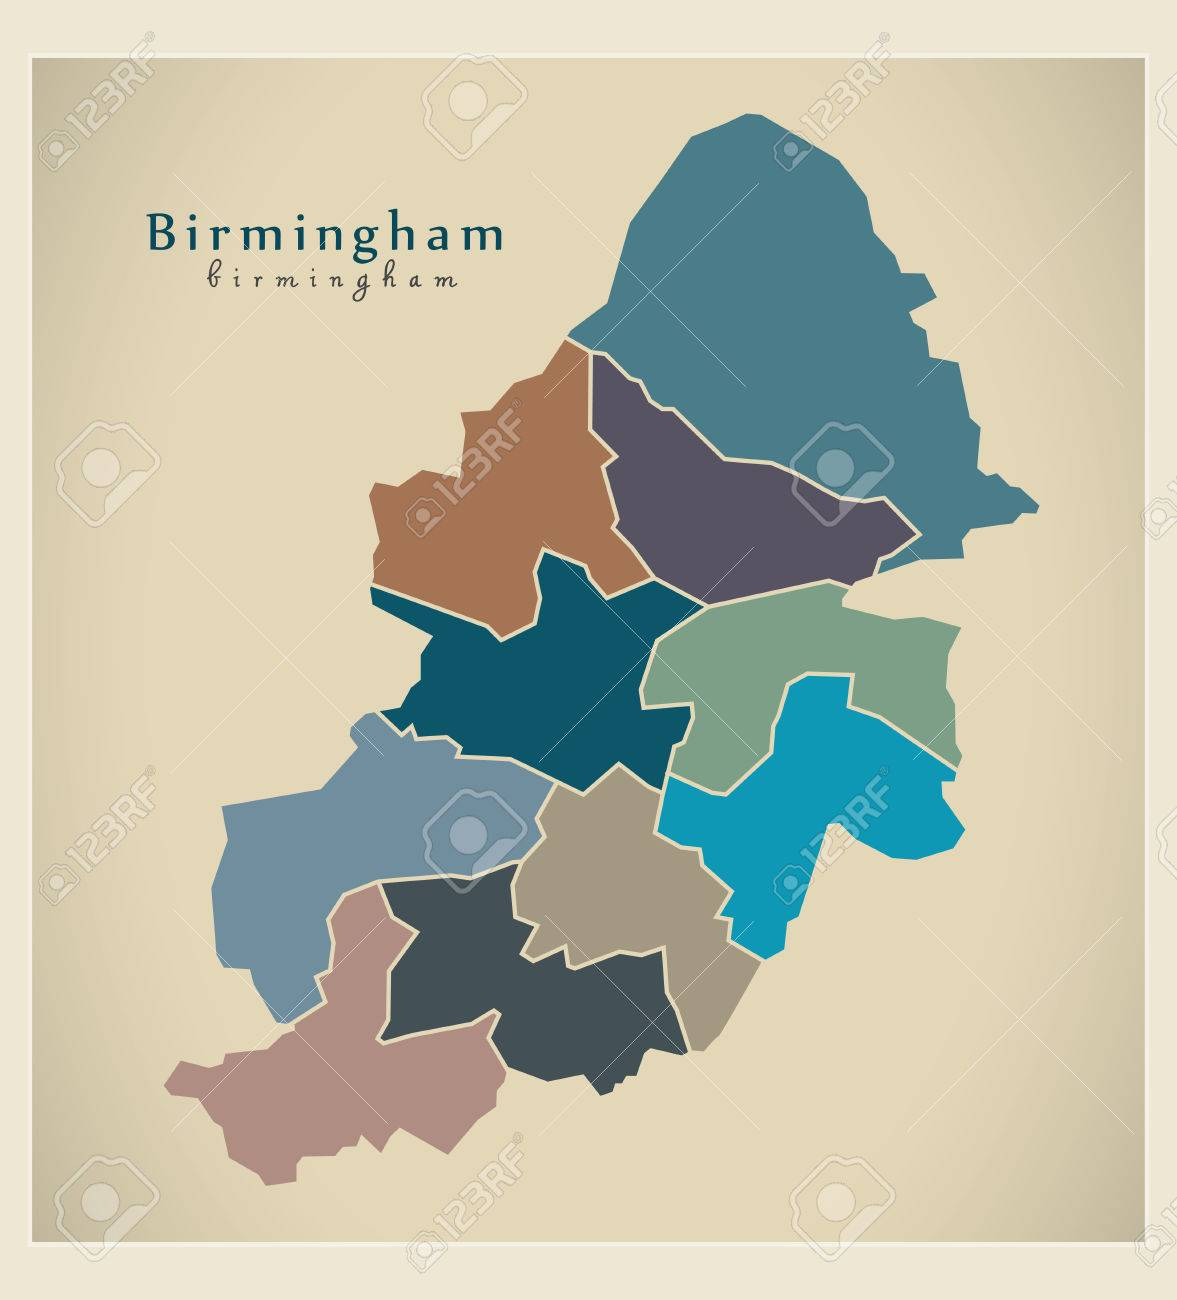 Map Of England Birmingham.Modern City Map Birmingham With Boroughs Coloured England Illustration